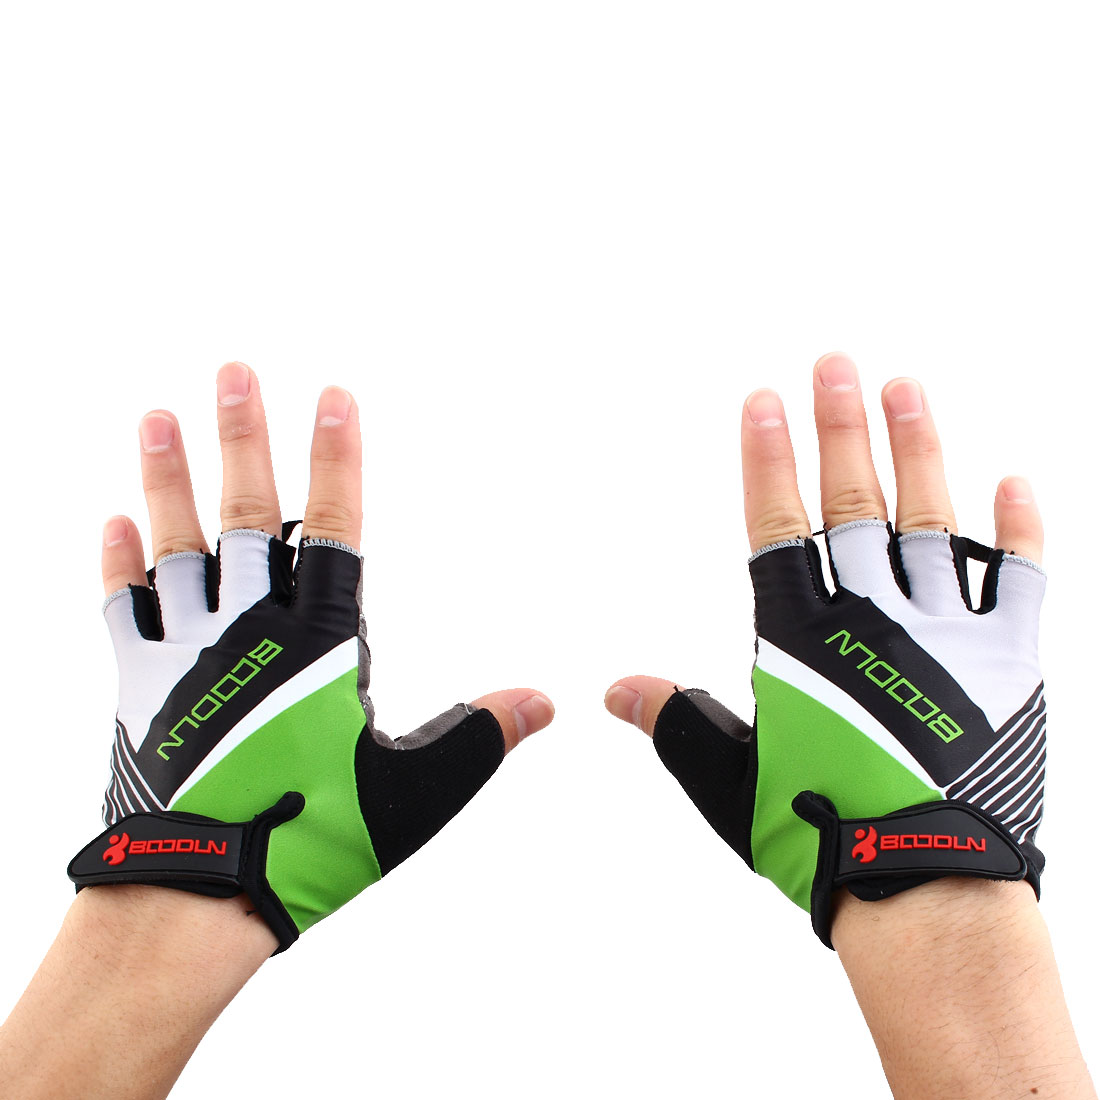 BOODUN Authorized Unisex Exercise Sports Cycling Fitness Half Finger Palm Support Gloves Green Size M Pair